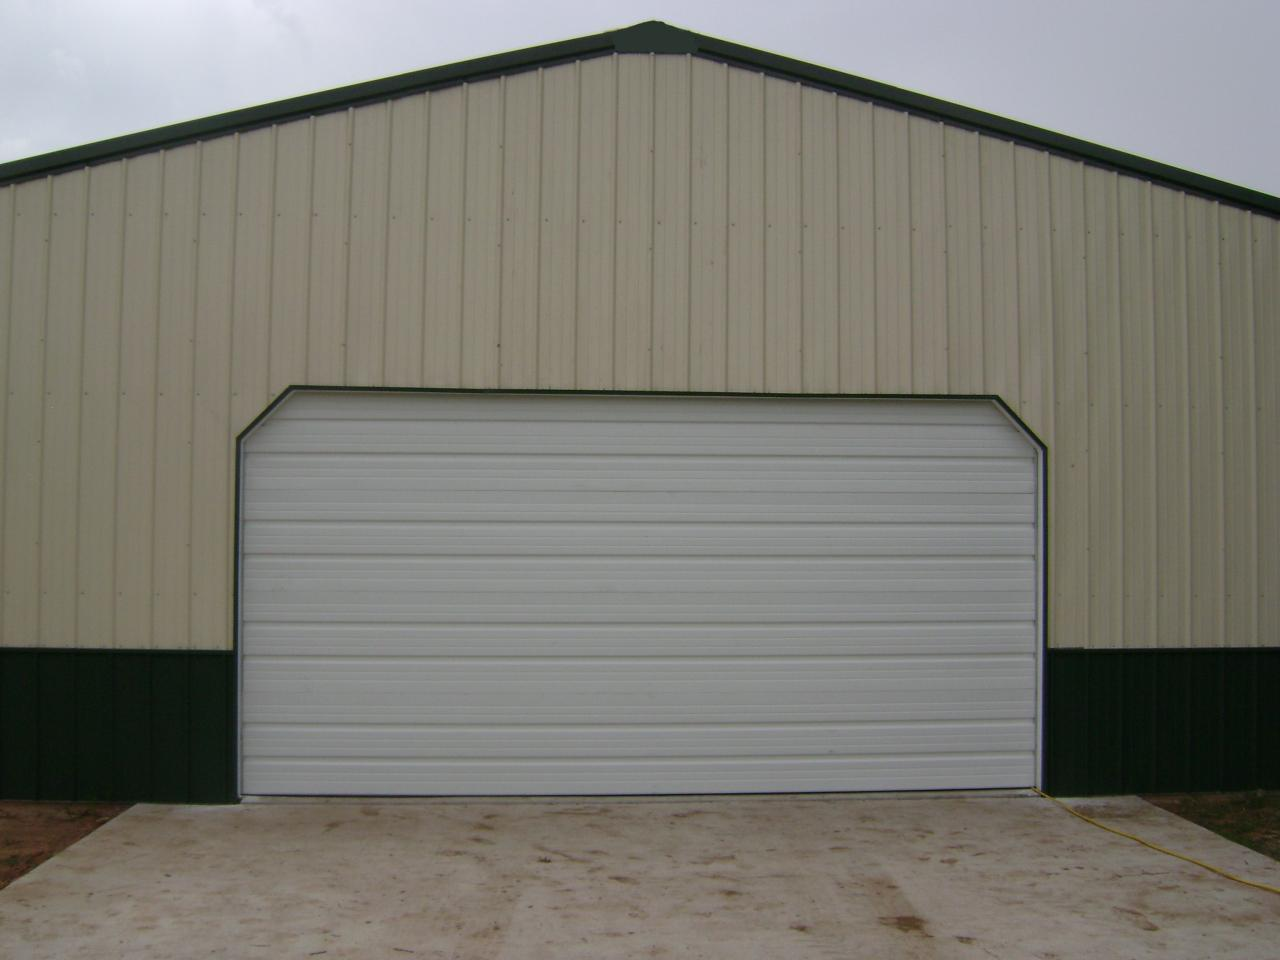 Large overhead doors large overhead doors 36 x 68 for How big is a garage door